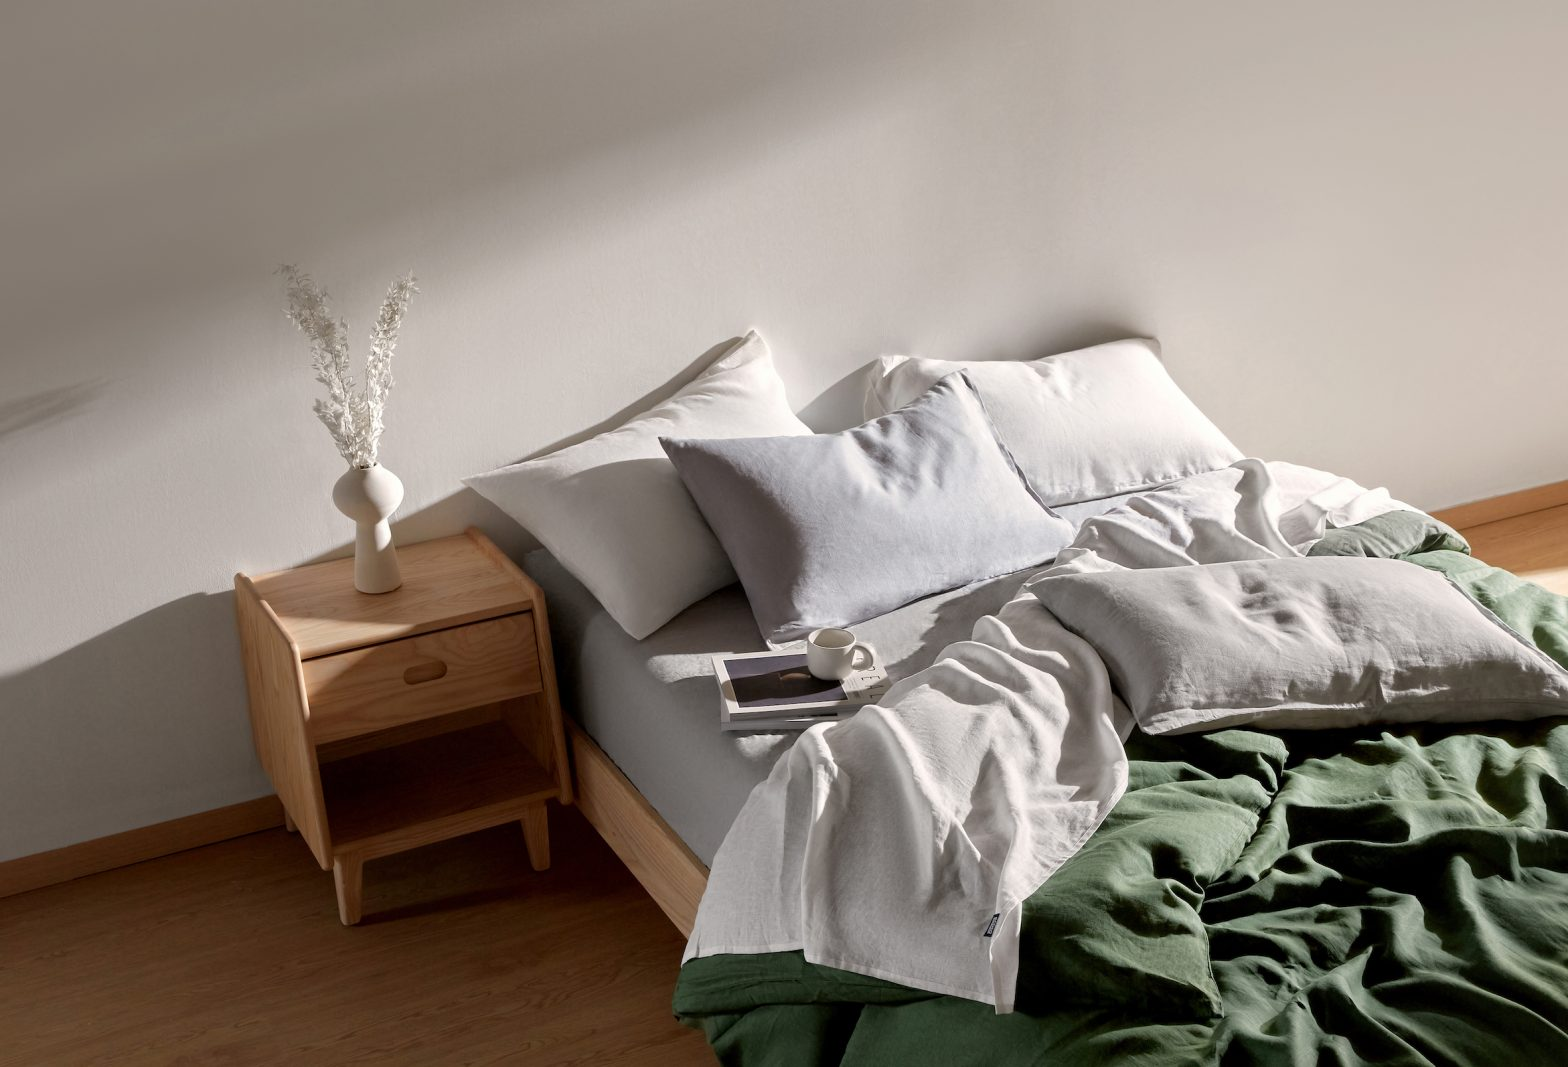 Image of a bed with earthy green Ecosa sheets.